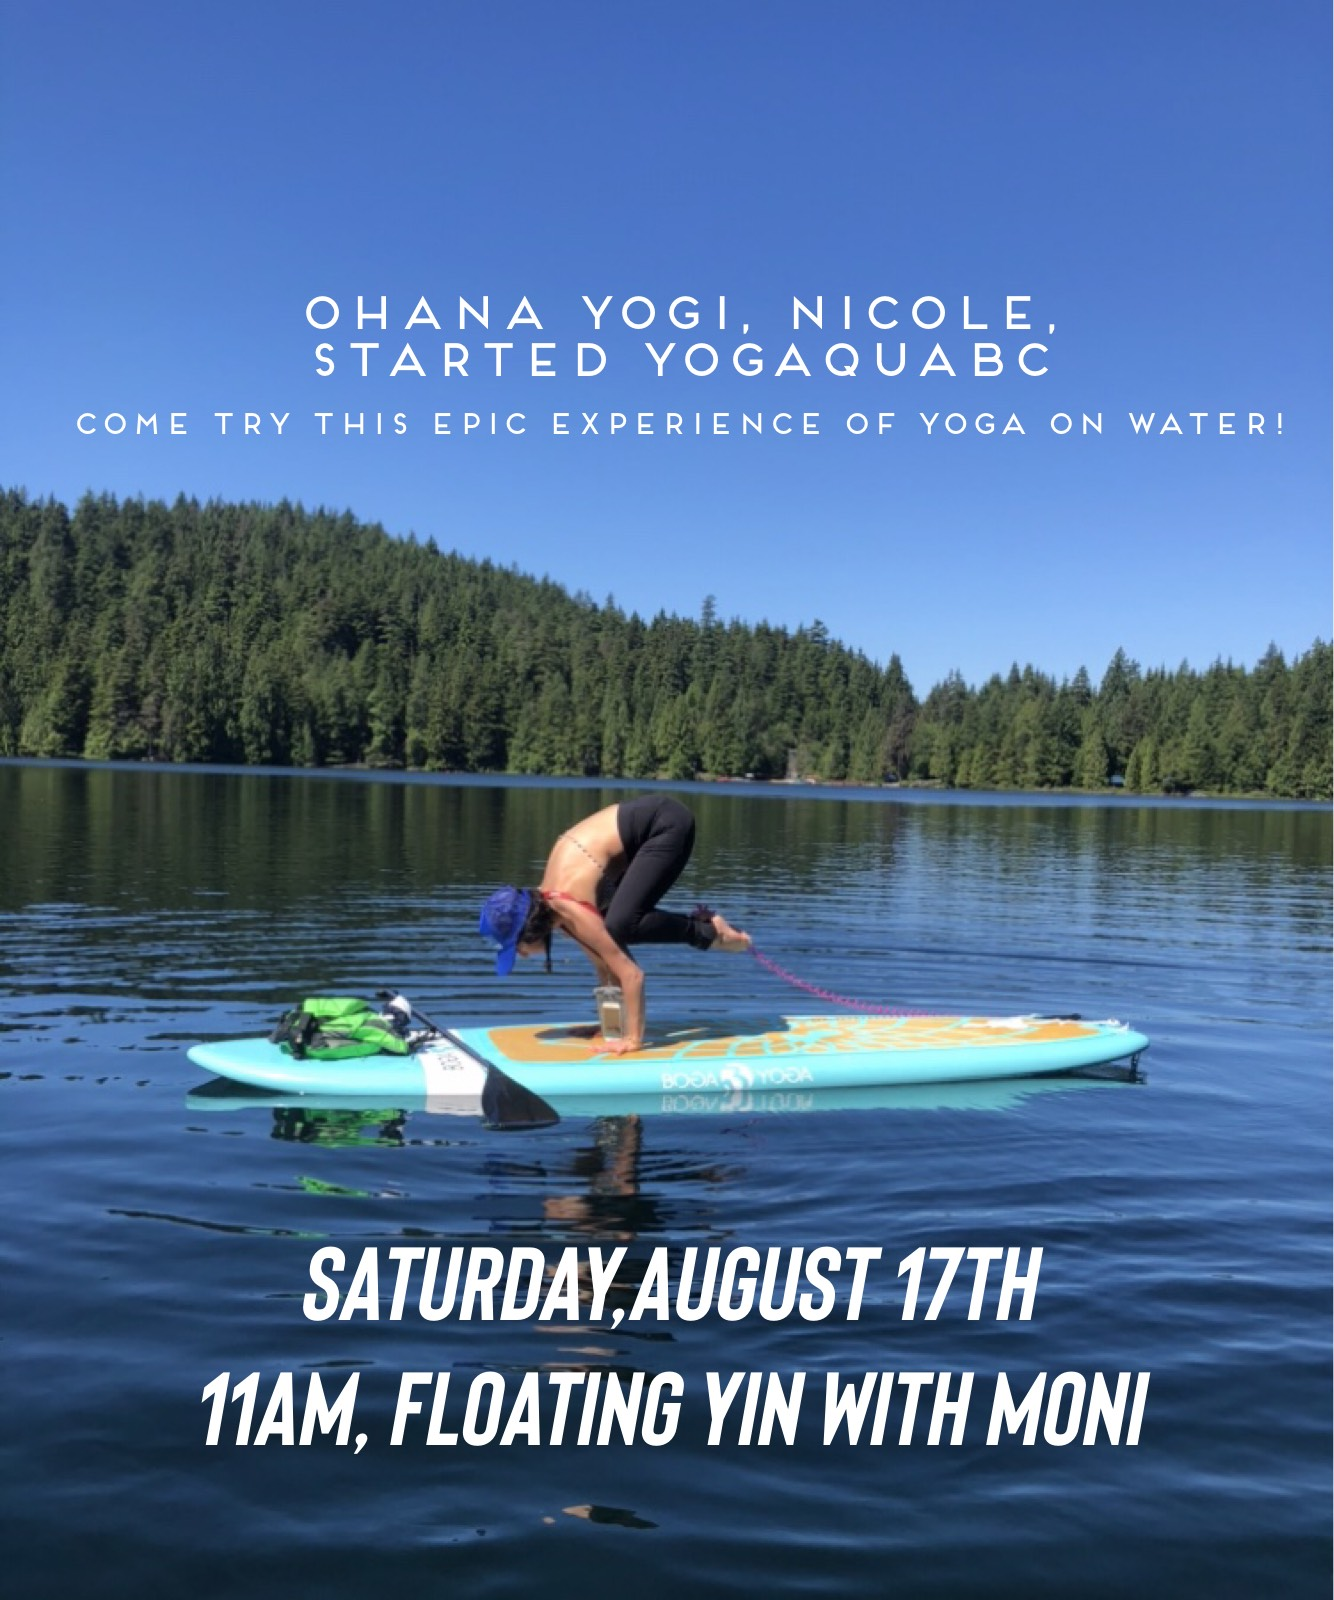 SUP Yin on the lake - Ohana teacher and dear community member, Nicole, has started YOGAQUA BC, a SUP Yoga company.This is such a pleasant way to practice, out on the water get some sun on your face, dive into the lake and be one with nature. No experience needed.Come join me !FREE for Ohana(one hour session)We meet at White Pine Beach,Port Moody so arrive early.There are limited spots so please reply back to this email to confirm your spot.For future events and booking with YogaquaBC, visit their Instagram or Facebook.